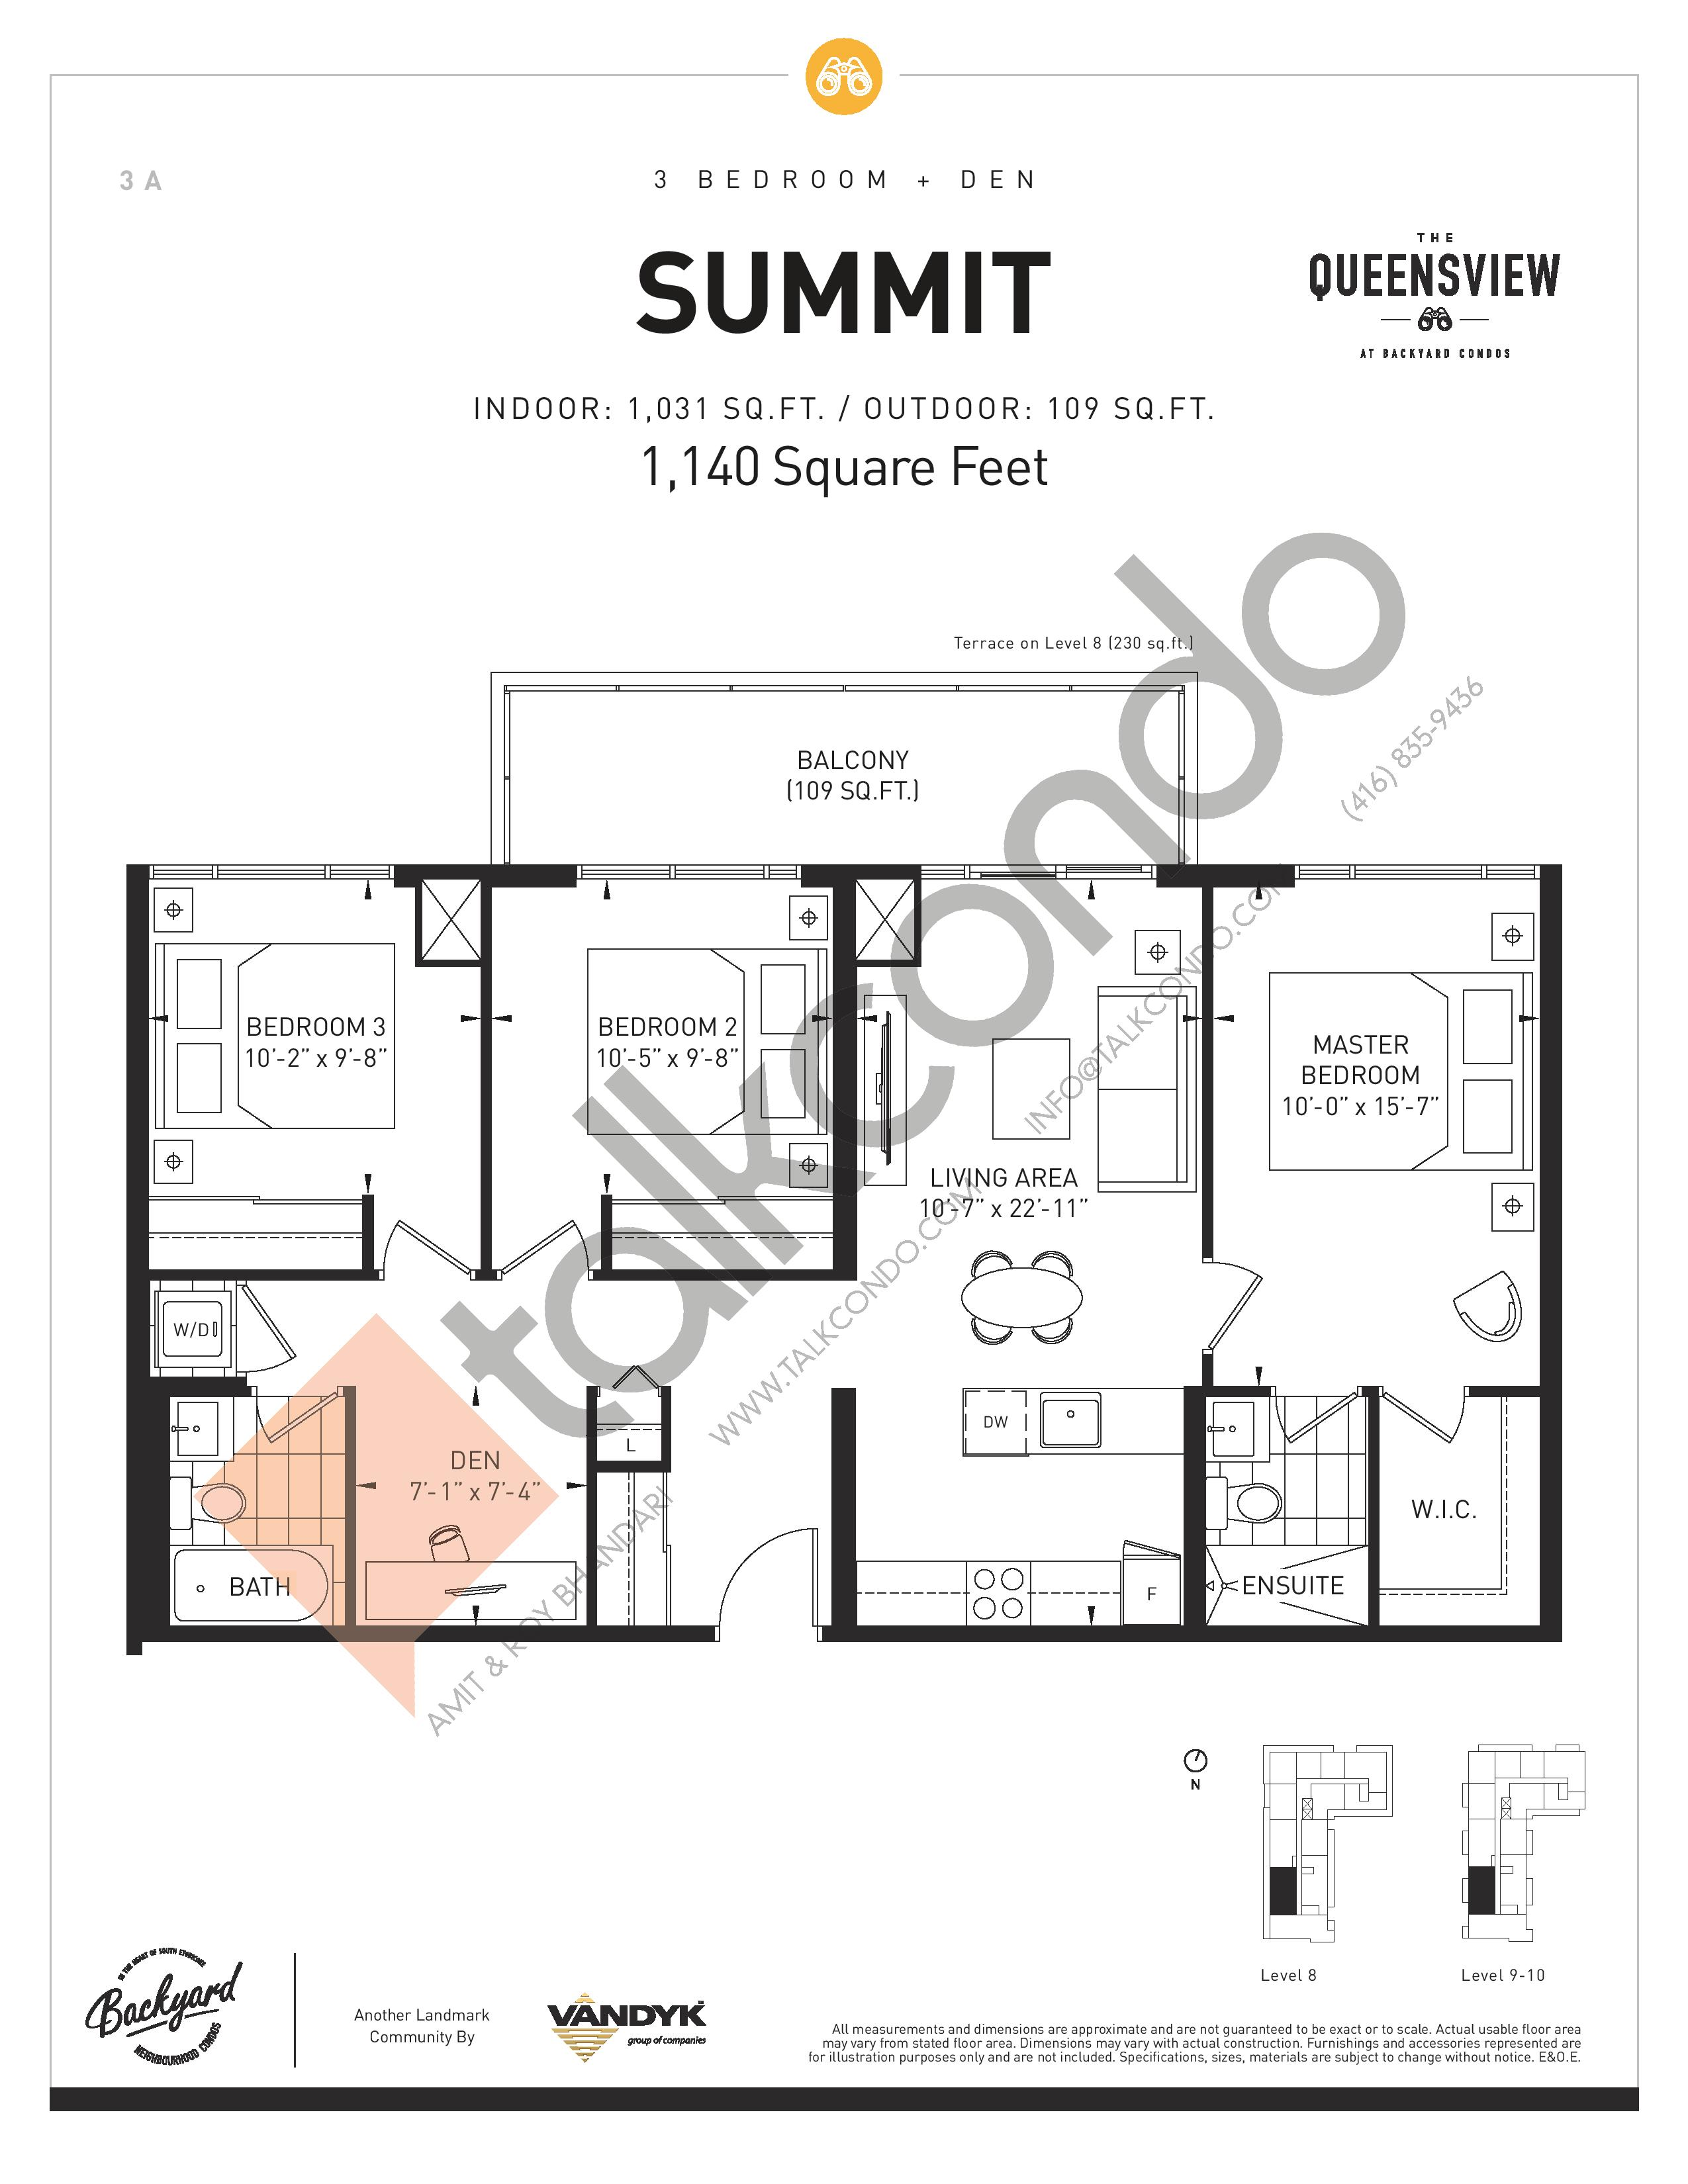 Summit Floor Plan at The Queensview at Backyard Condos - 1031 sq.ft